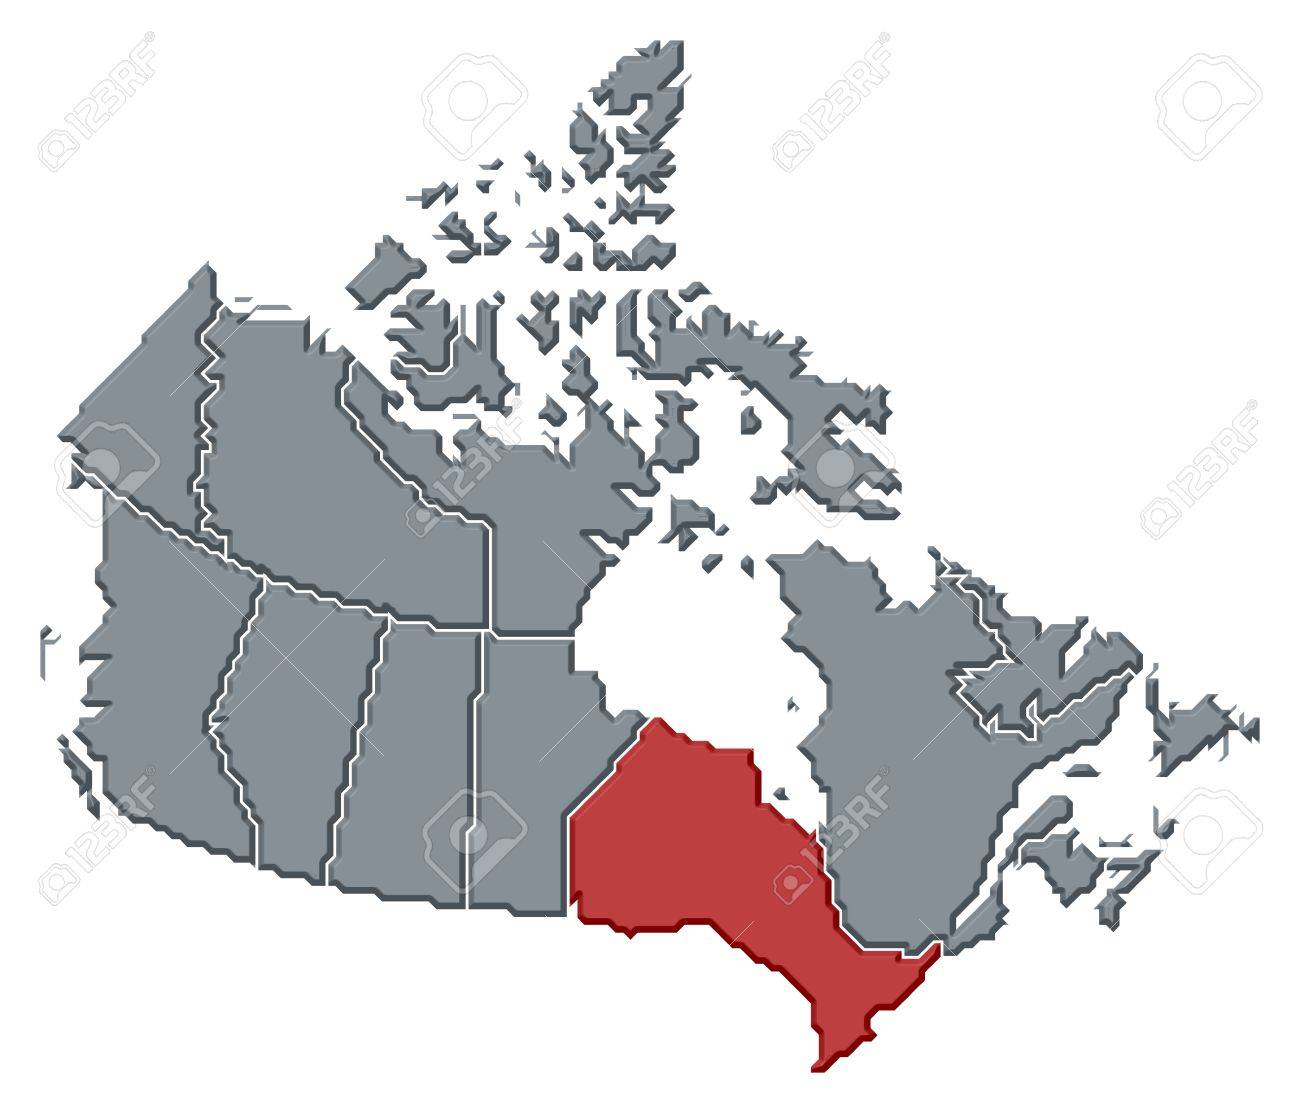 Political Map Of Canada With The Several Provinces Where Ontario - Political canada map